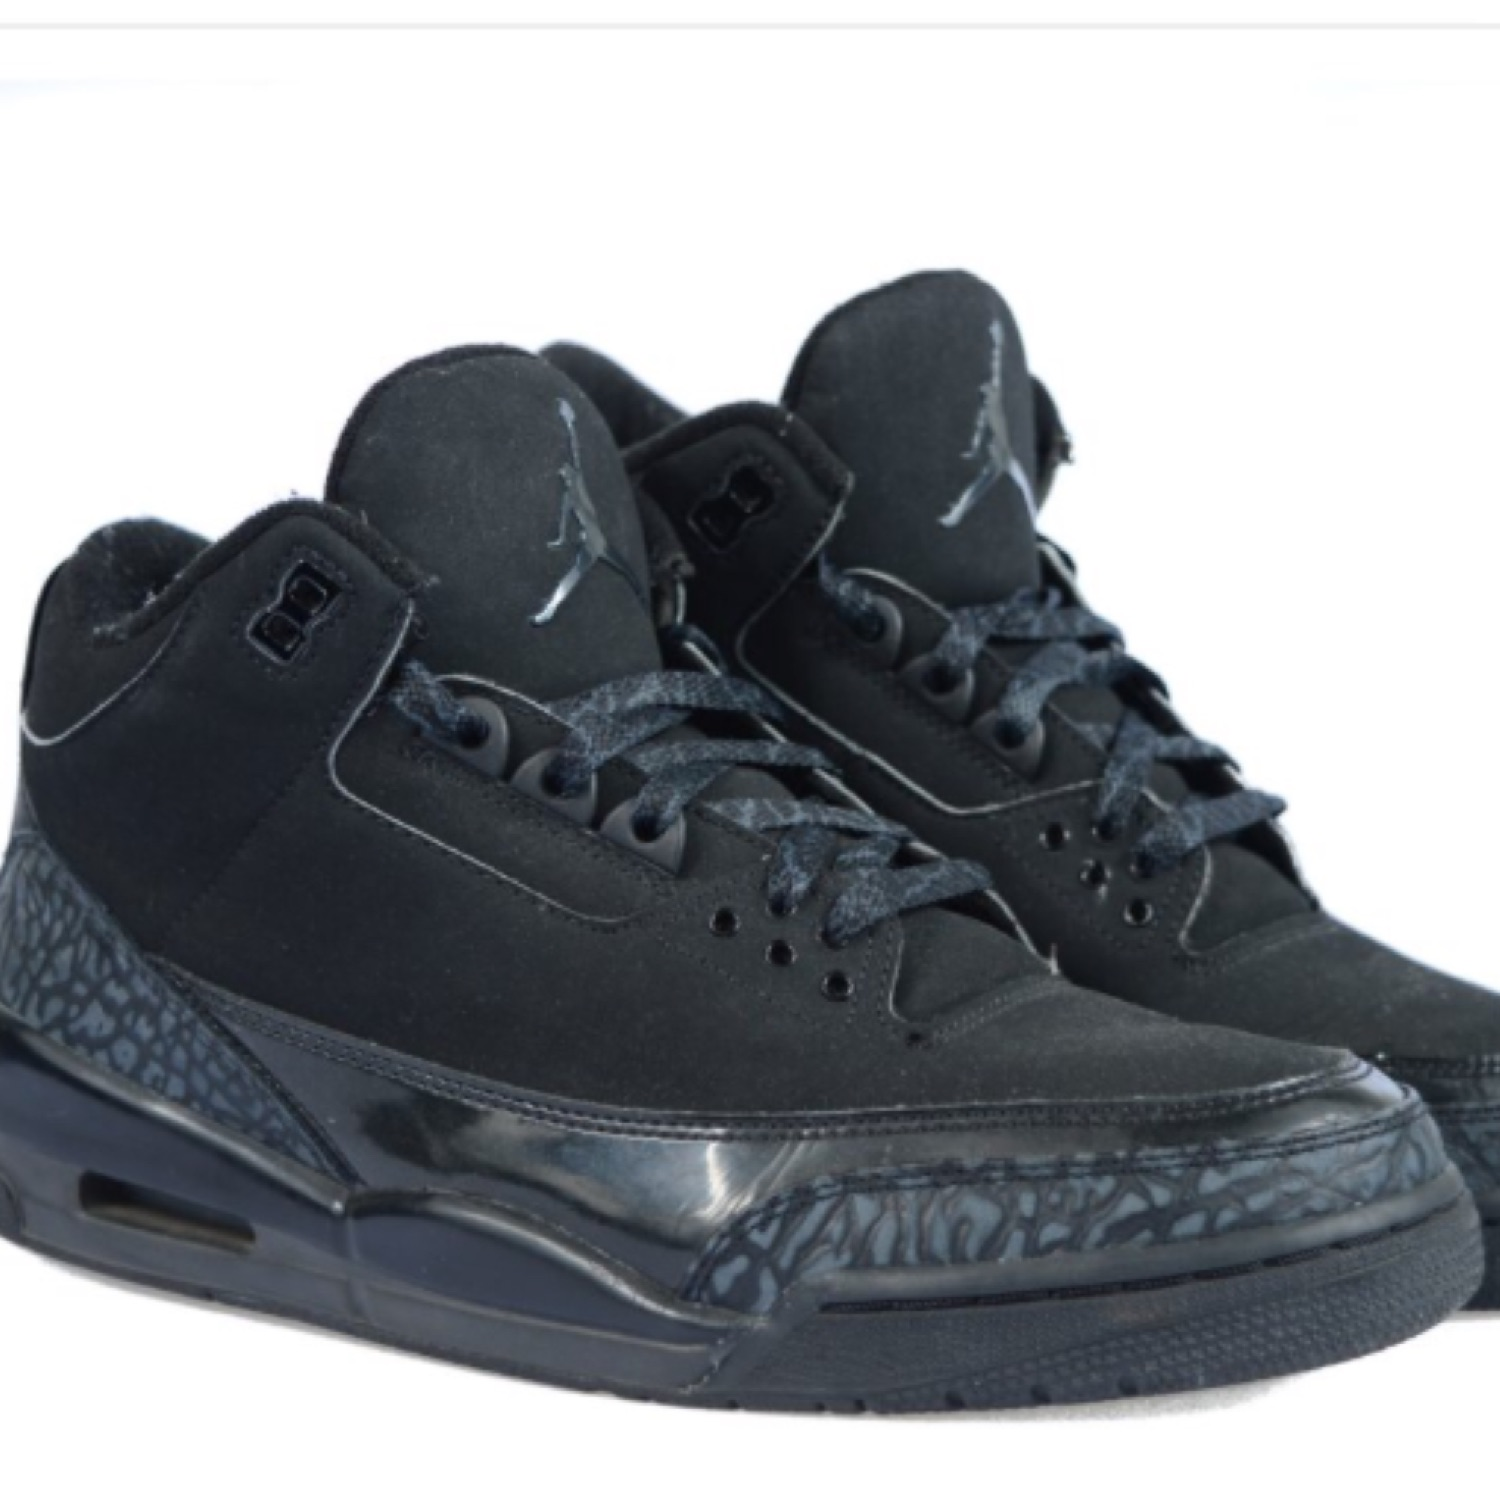 new style 6e927 56f52 Nike Air Jordan 3 Retro